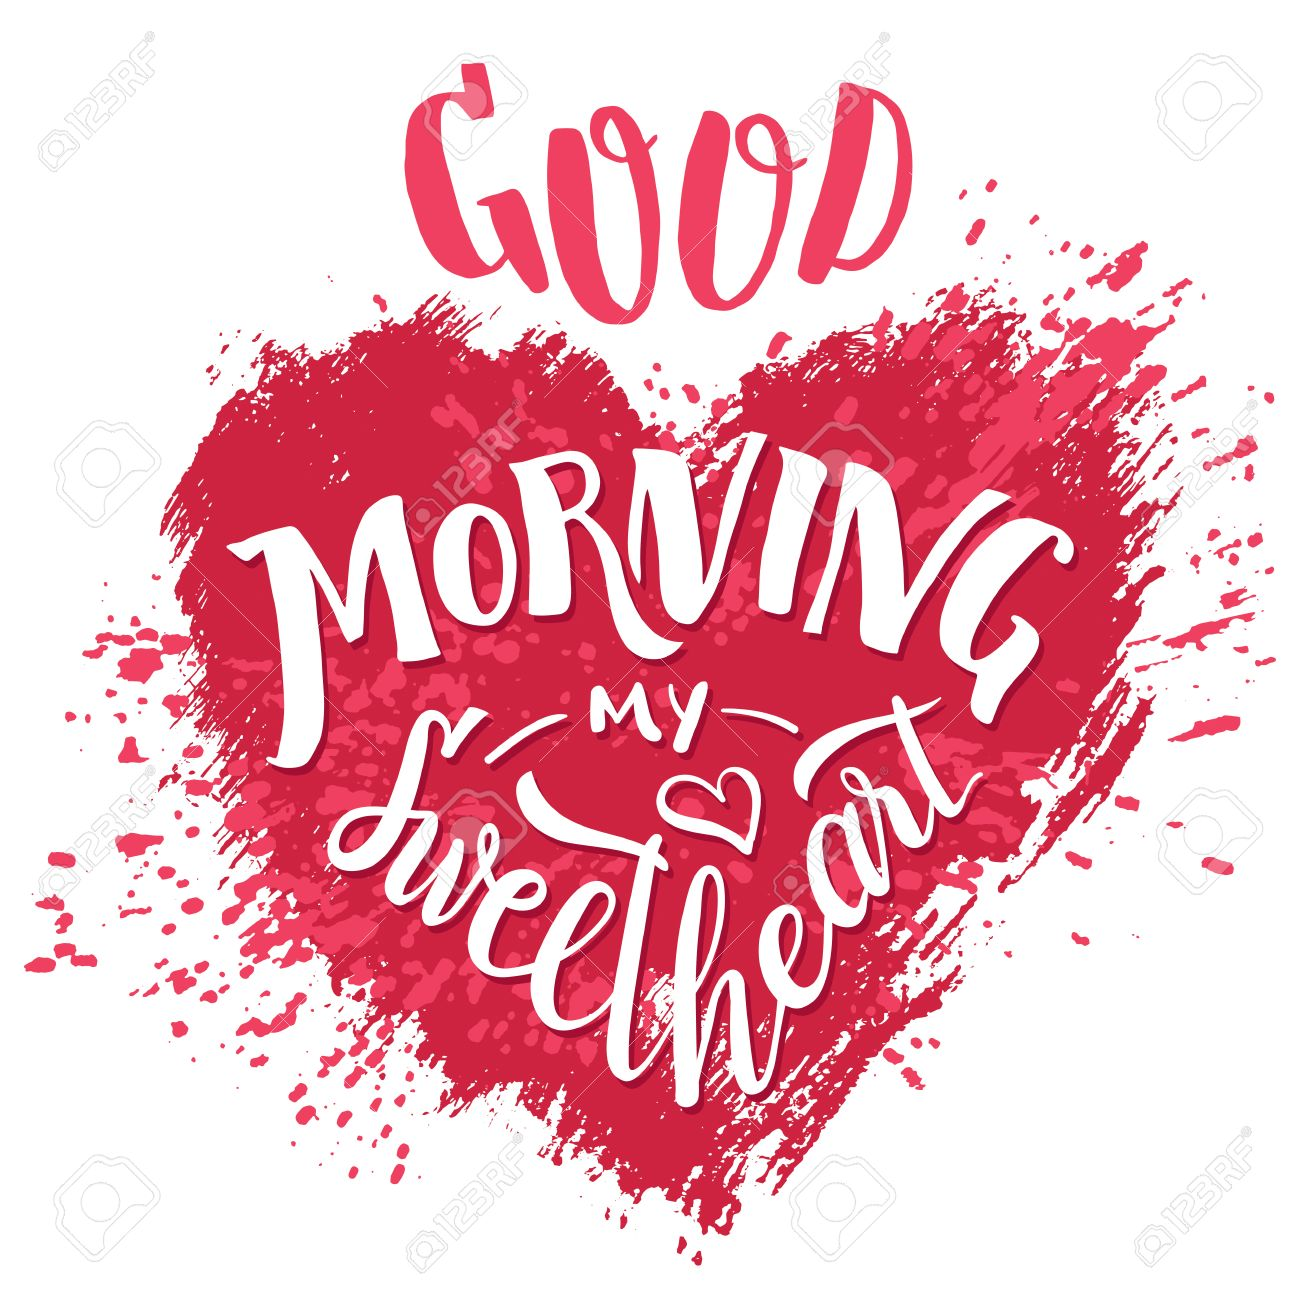 Good morning my sweetheart hand lettering valentines day good morning my sweetheart hand lettering valentines day greeting card typography poster design kristyandbryce Gallery